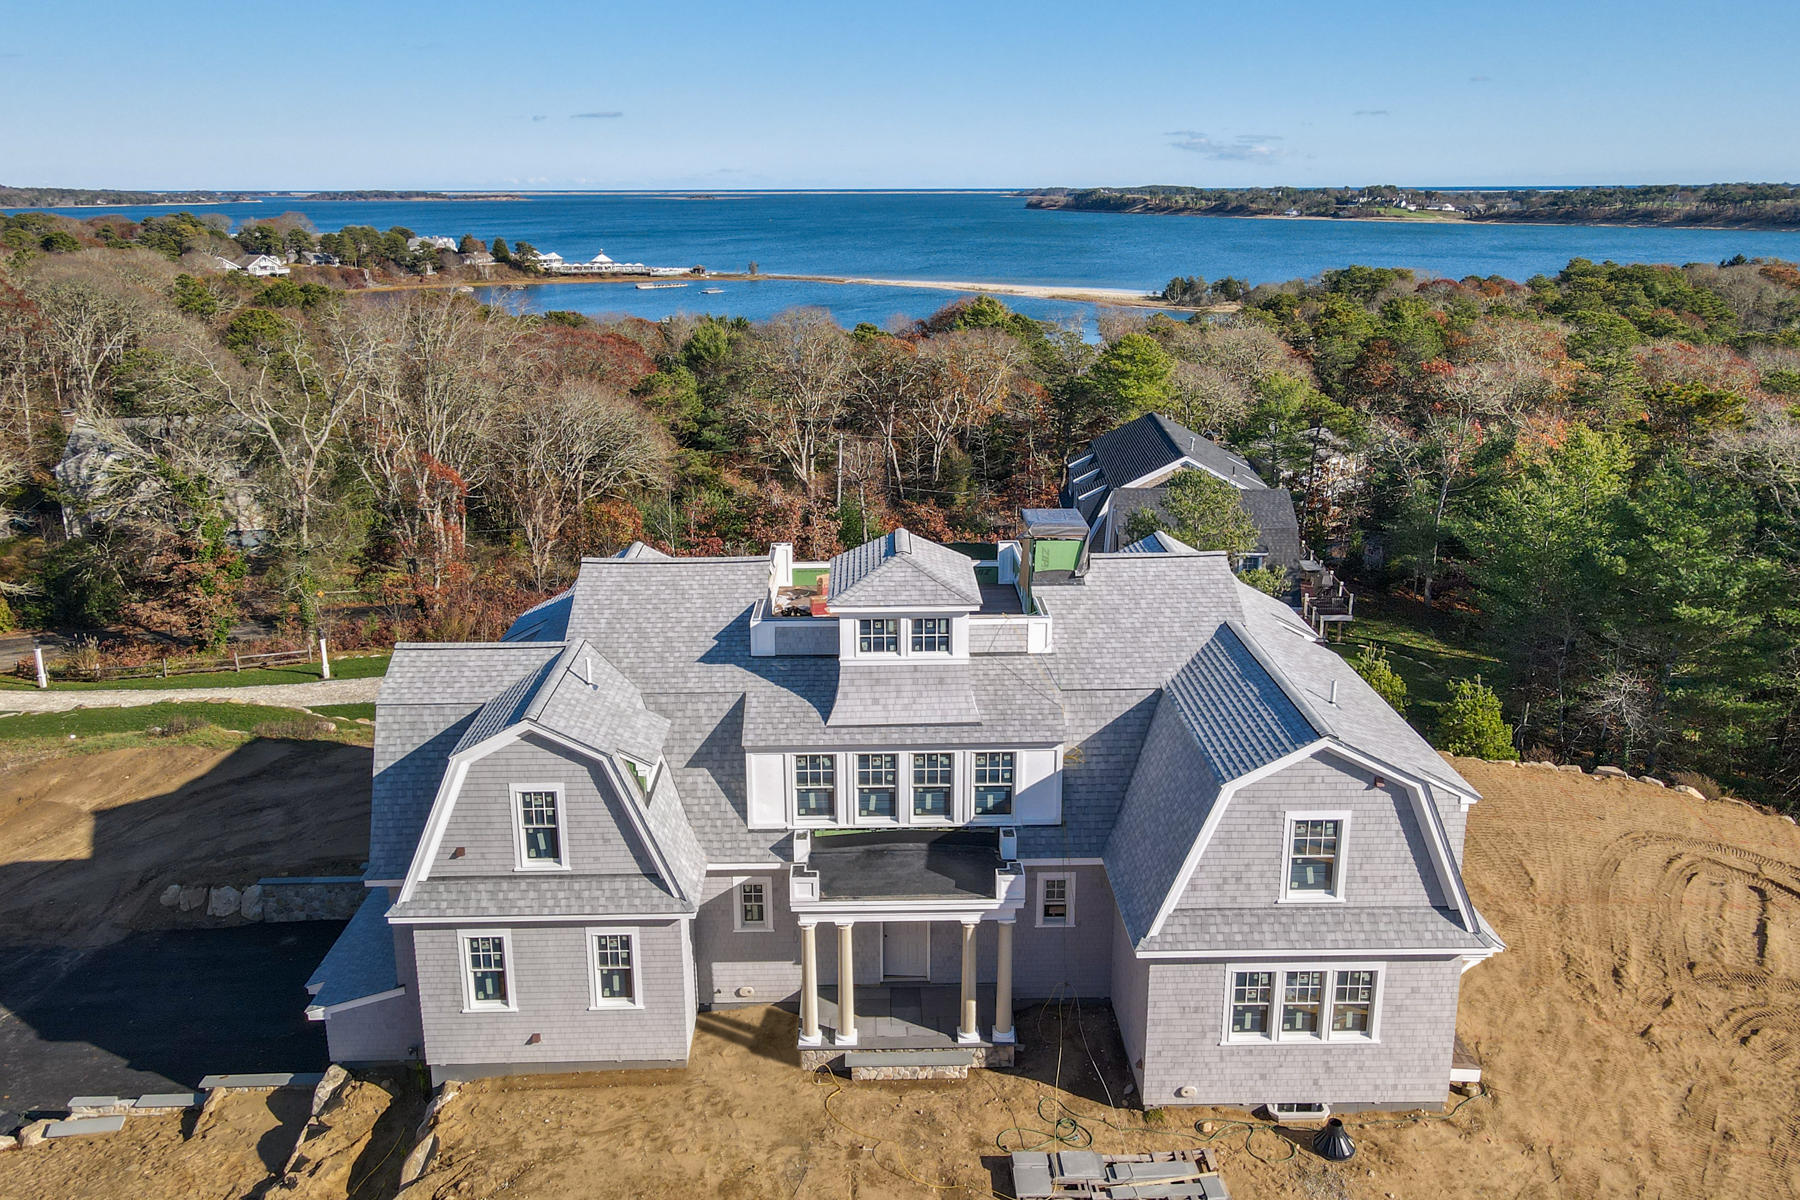 click to view more details 20 Mariner Drive, Harwich, MA 02645